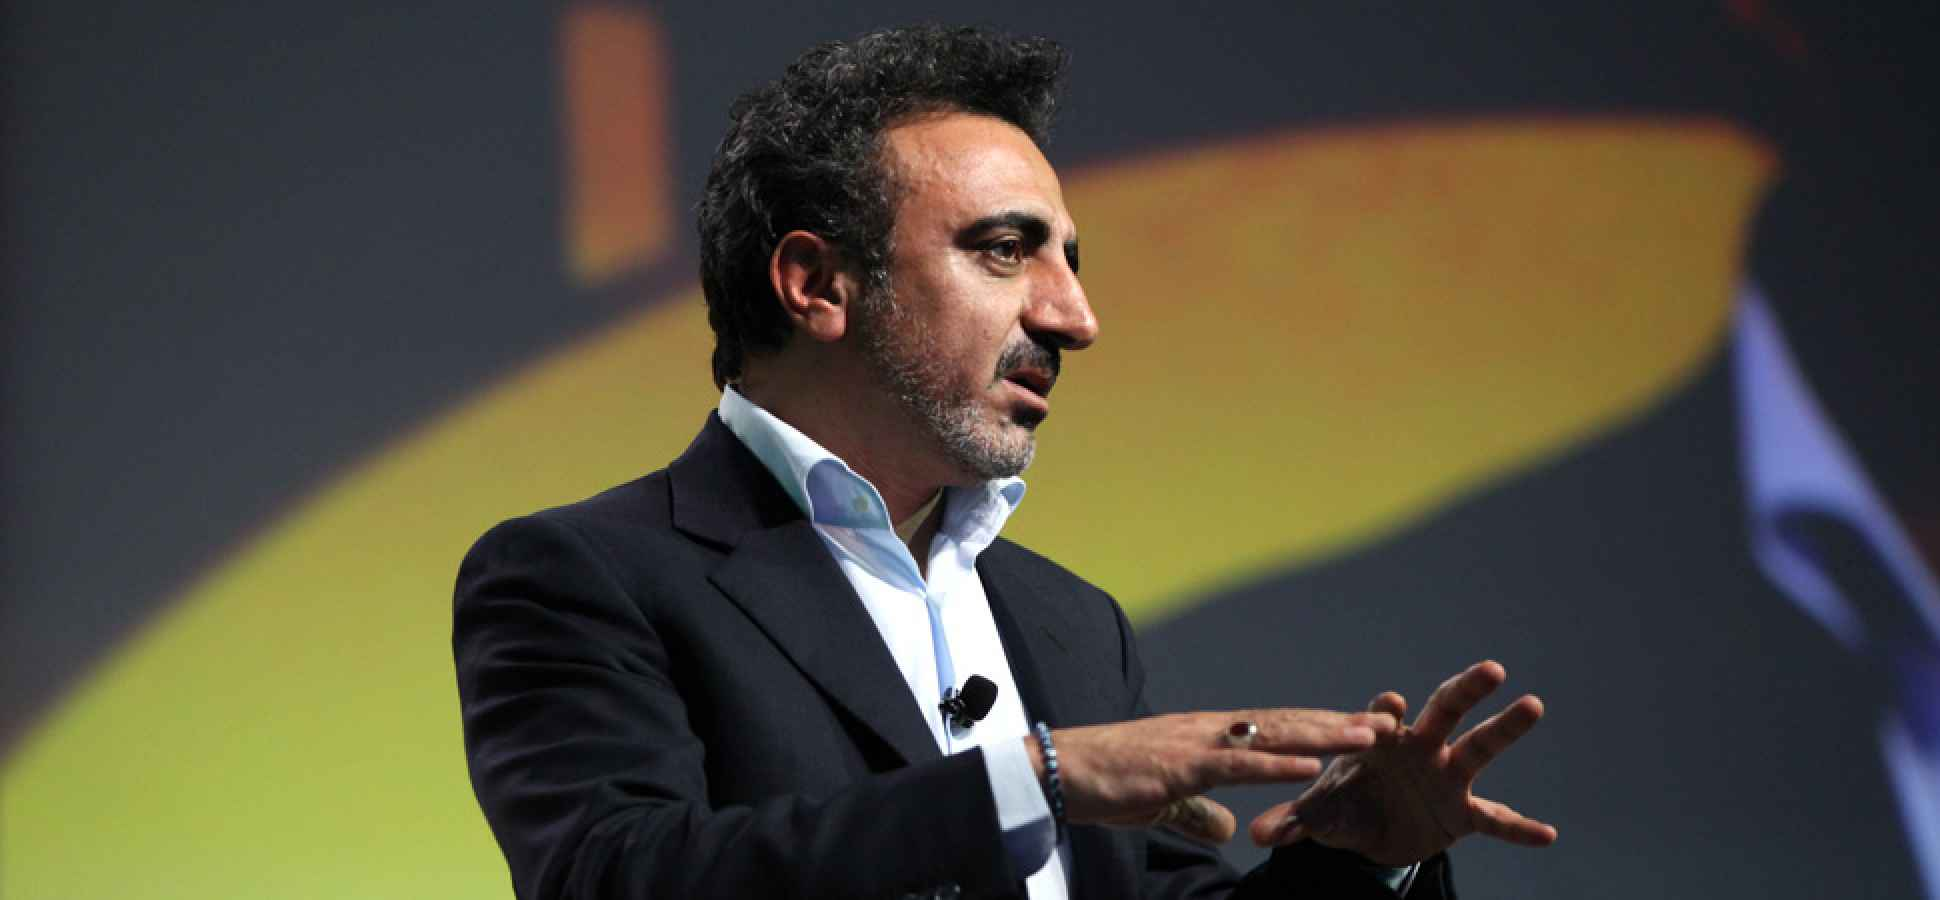 Chobani Founder: 'Elevate Yourself' Above Common Sense